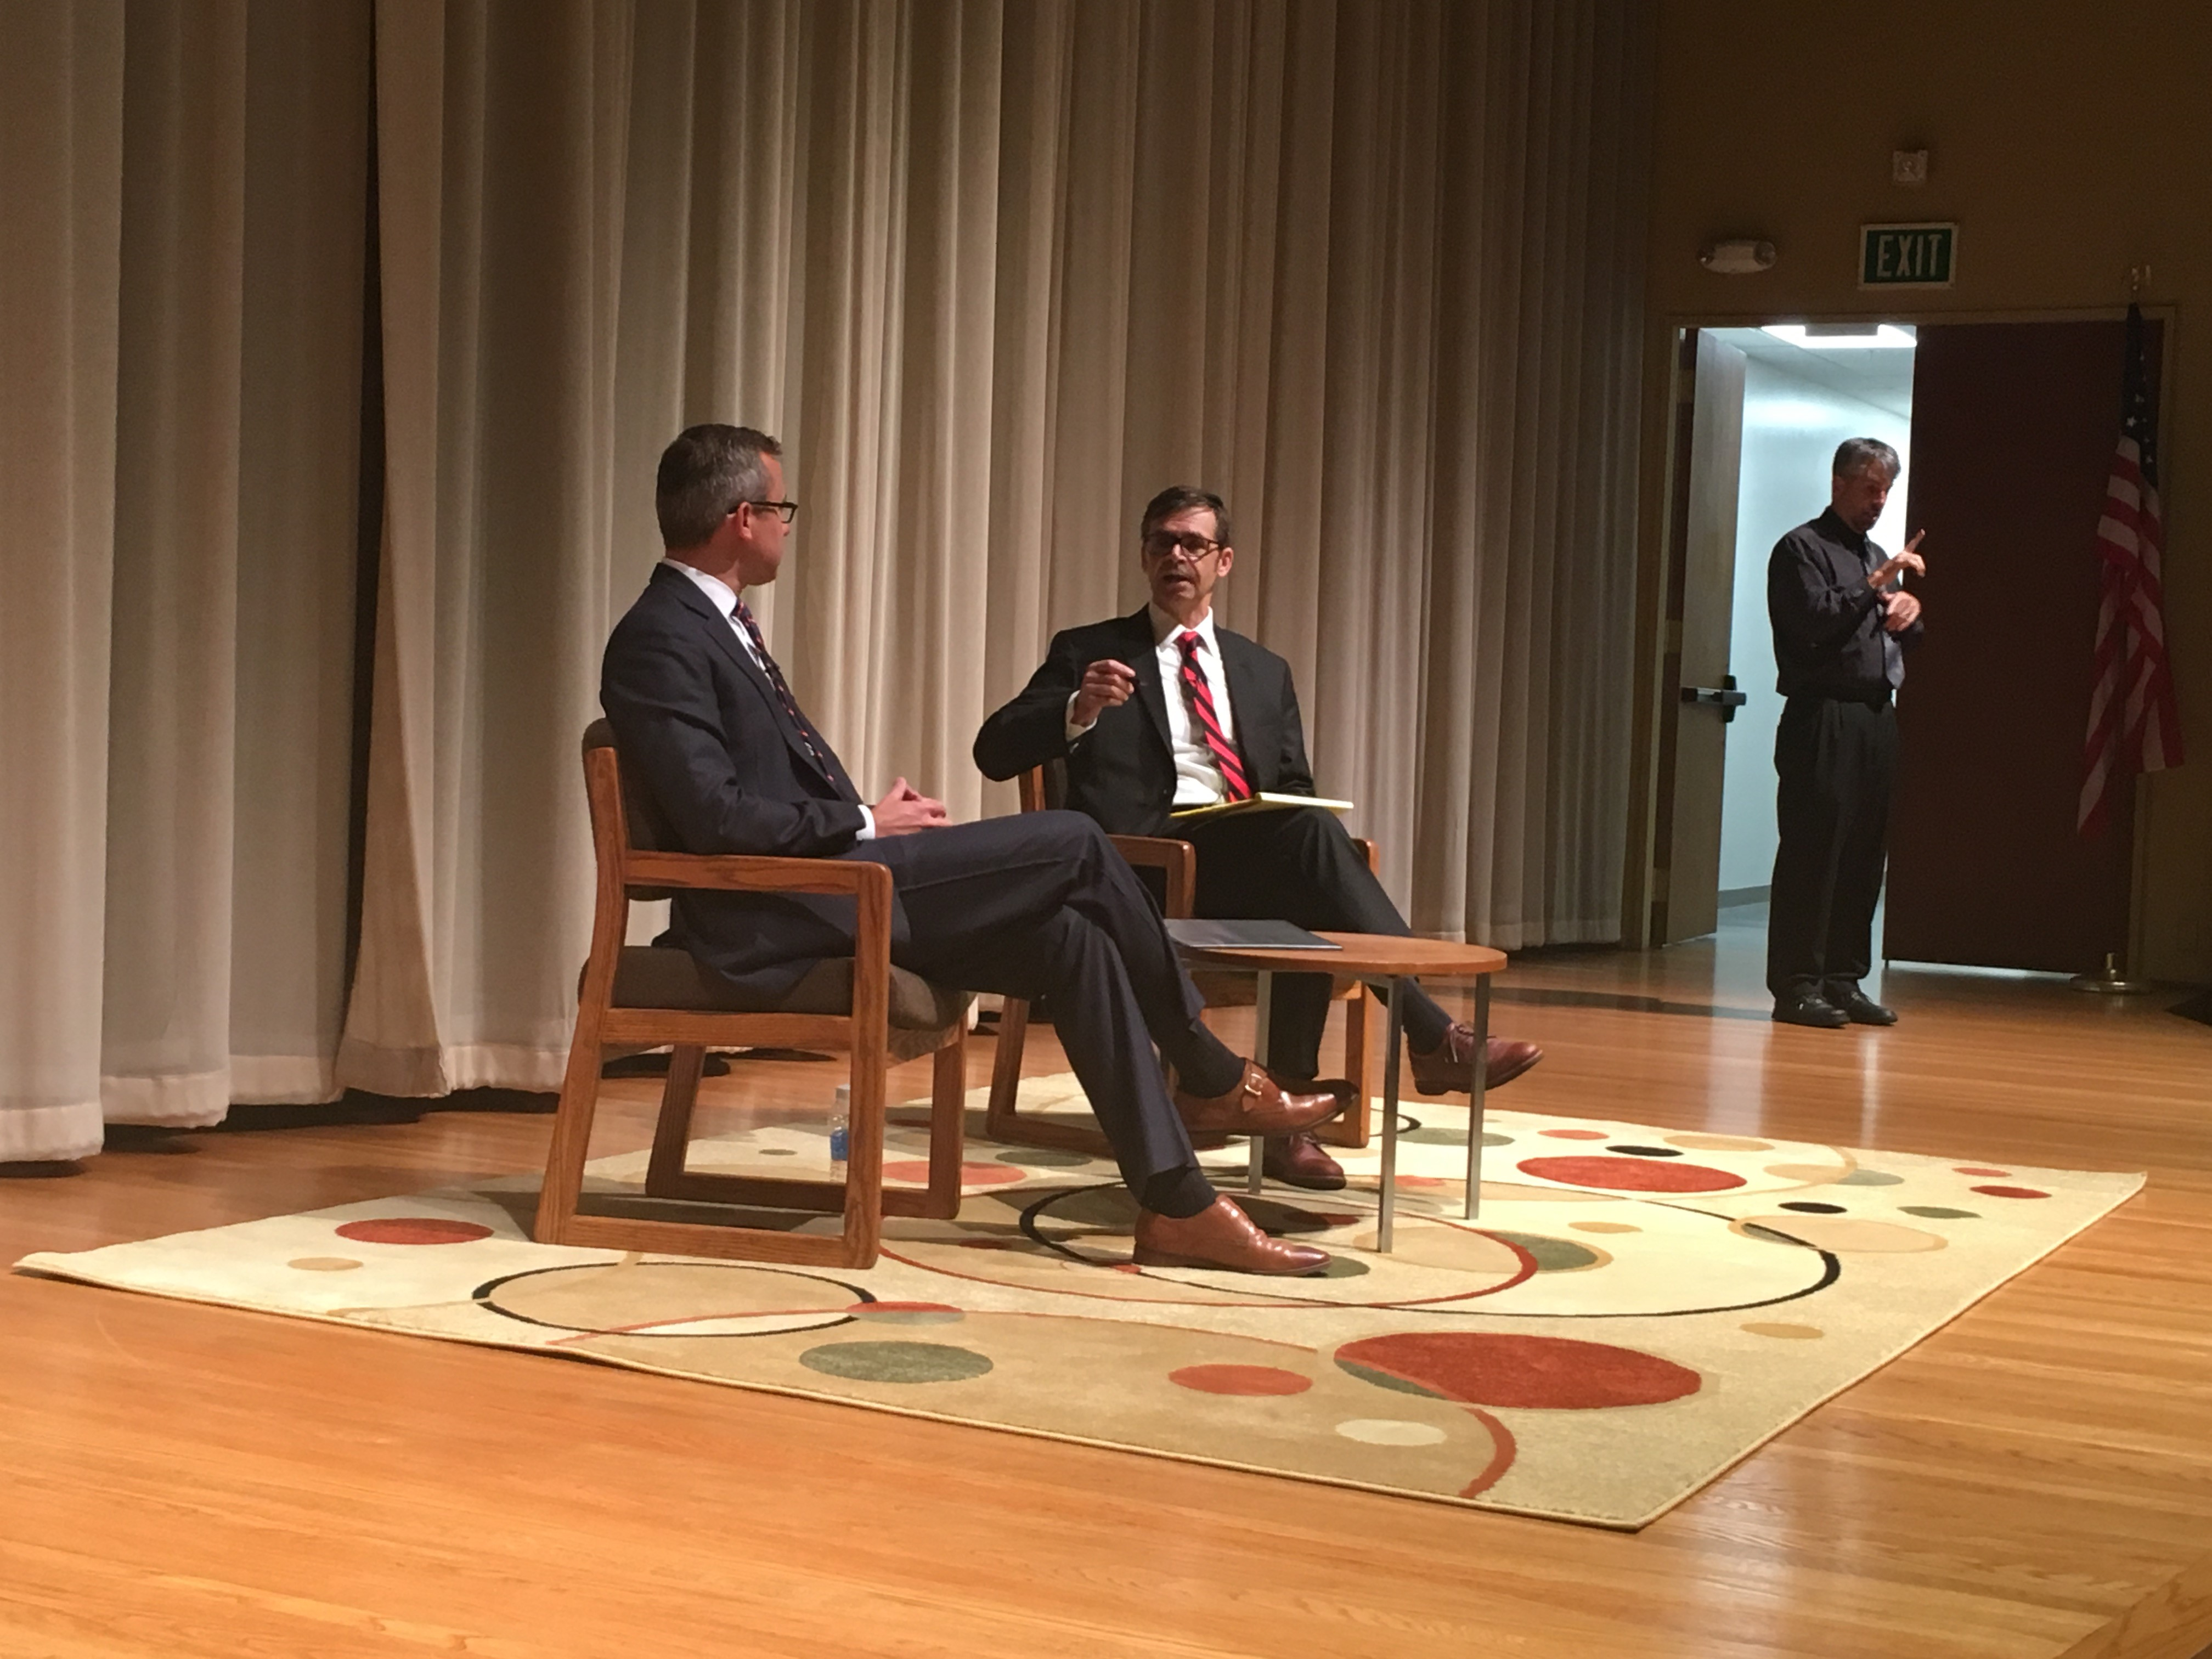 Poli Sci alumnus Jeff Zeleny returns for Hoagland Lecture